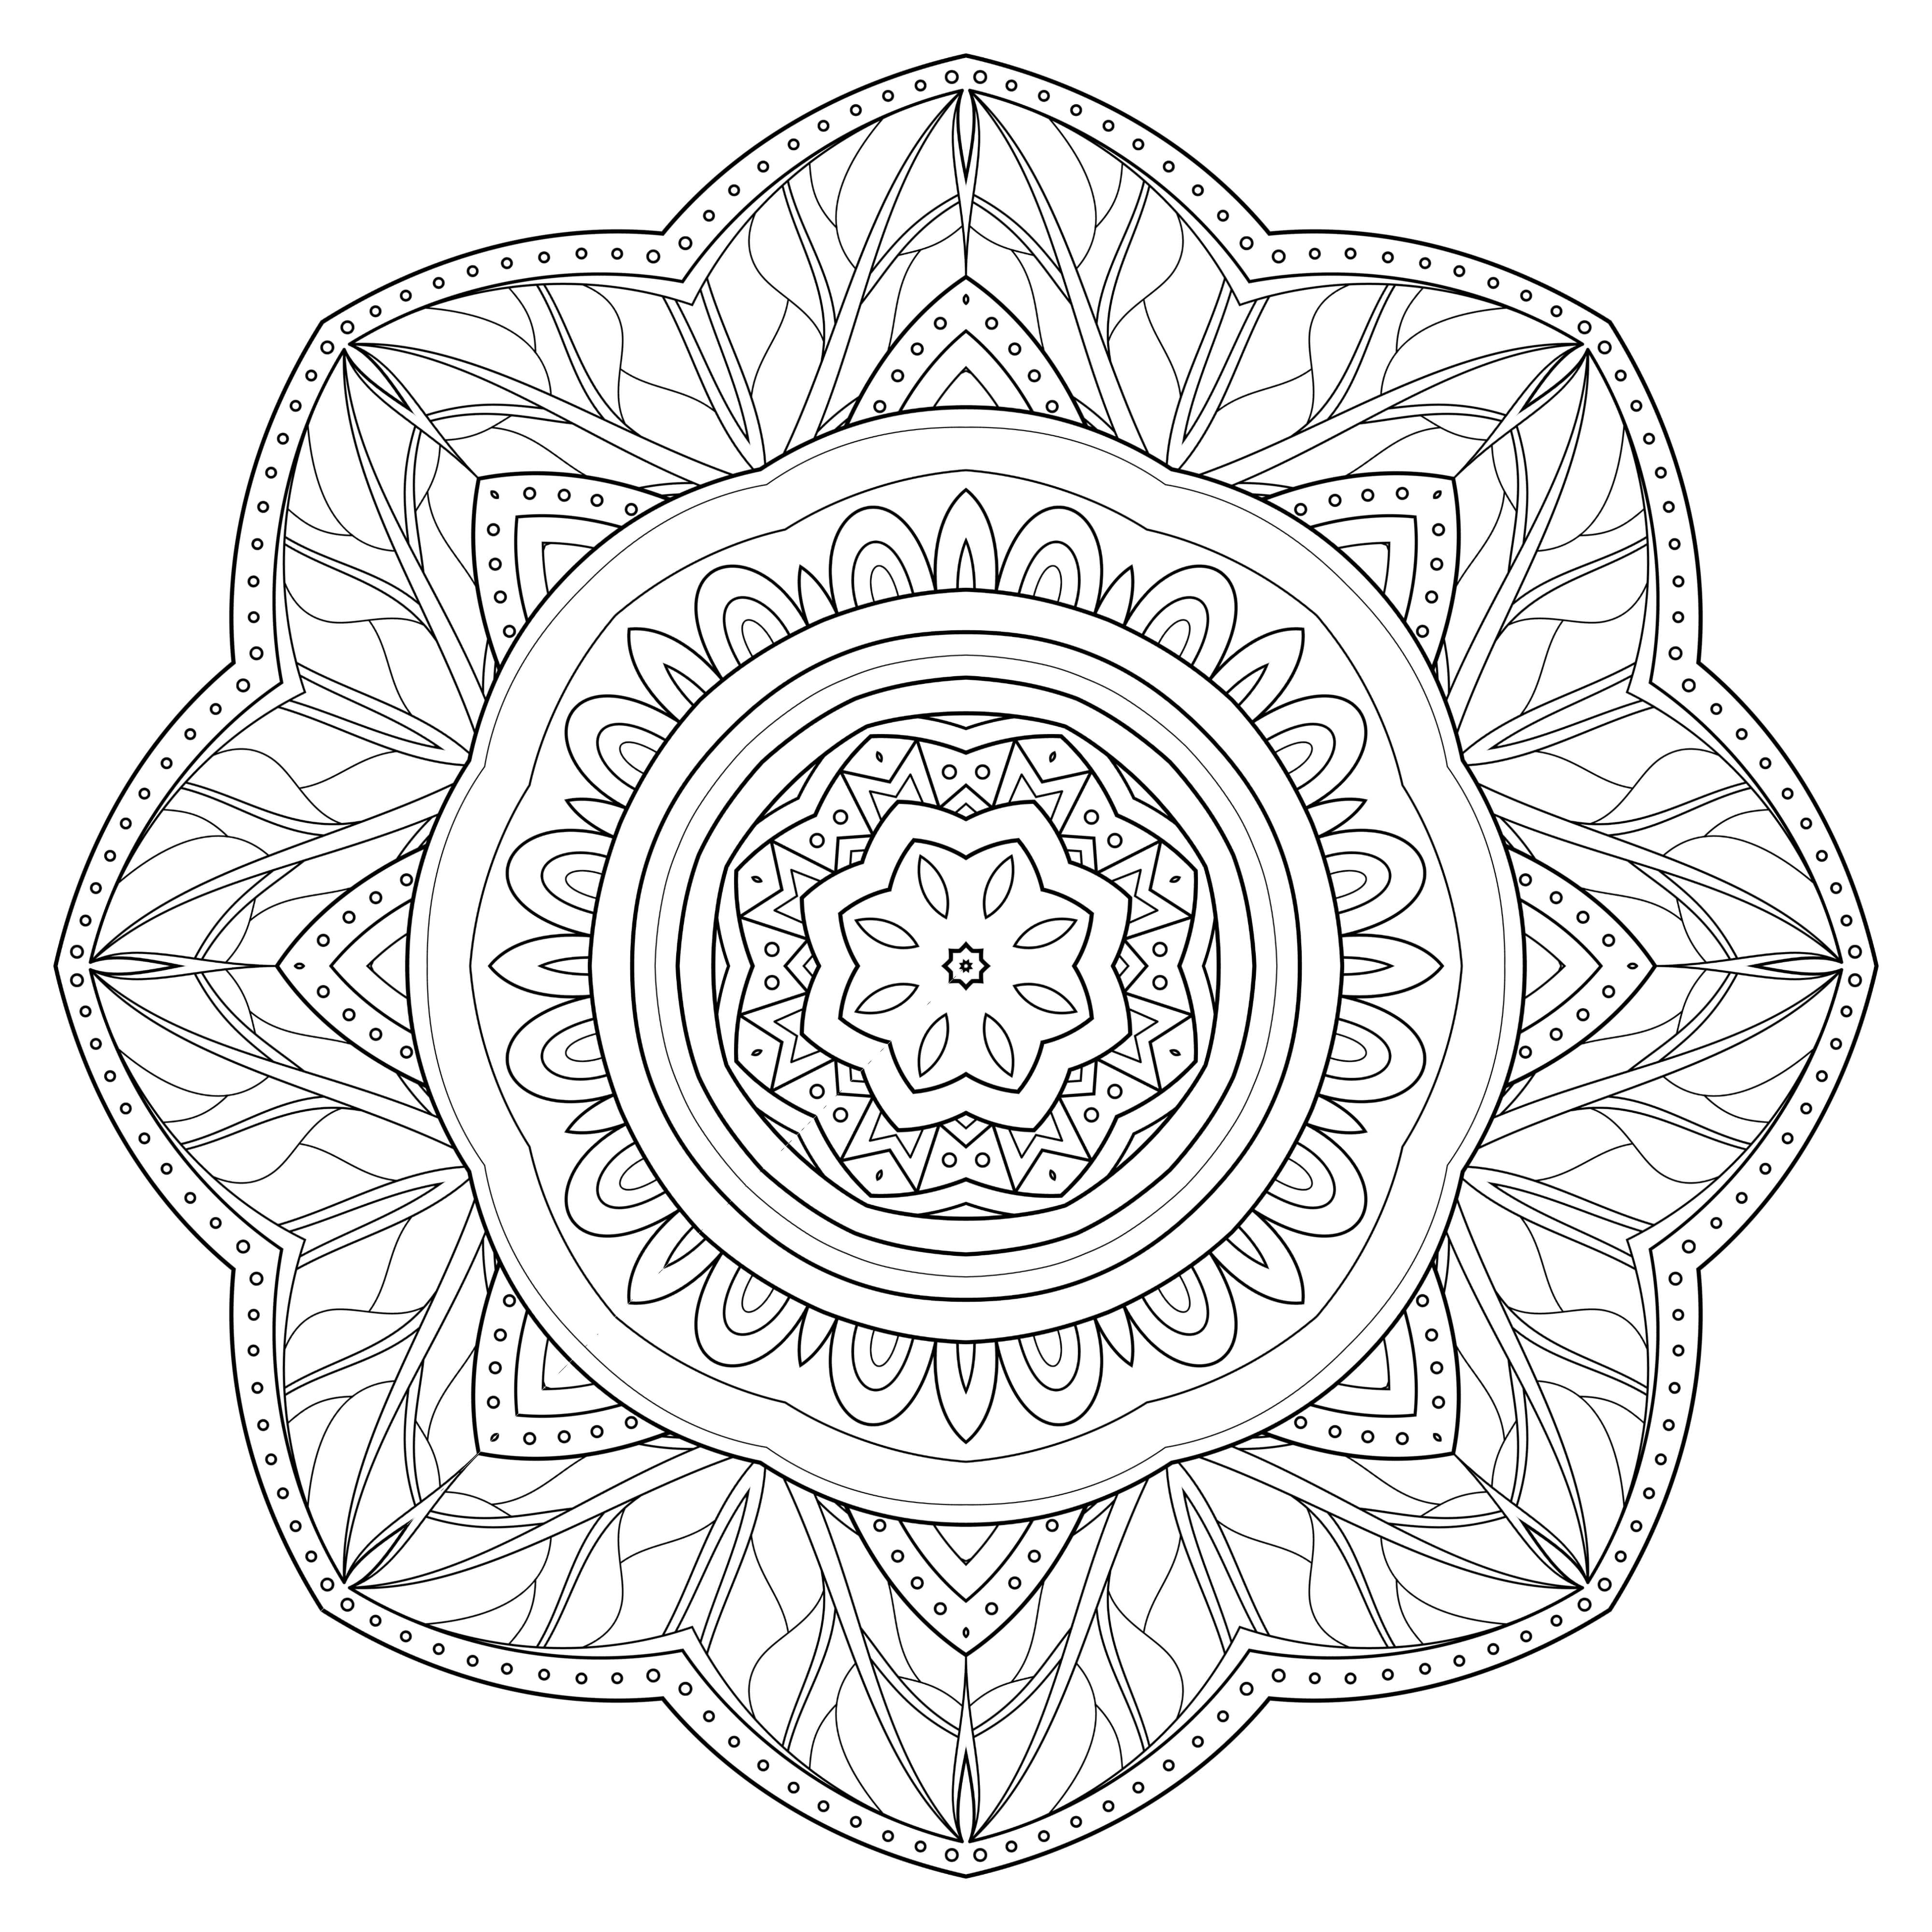 Lifestyle And Productivity The Maven Circle Free Printable Coloring Pages Coloring Pages Free Printable Coloring